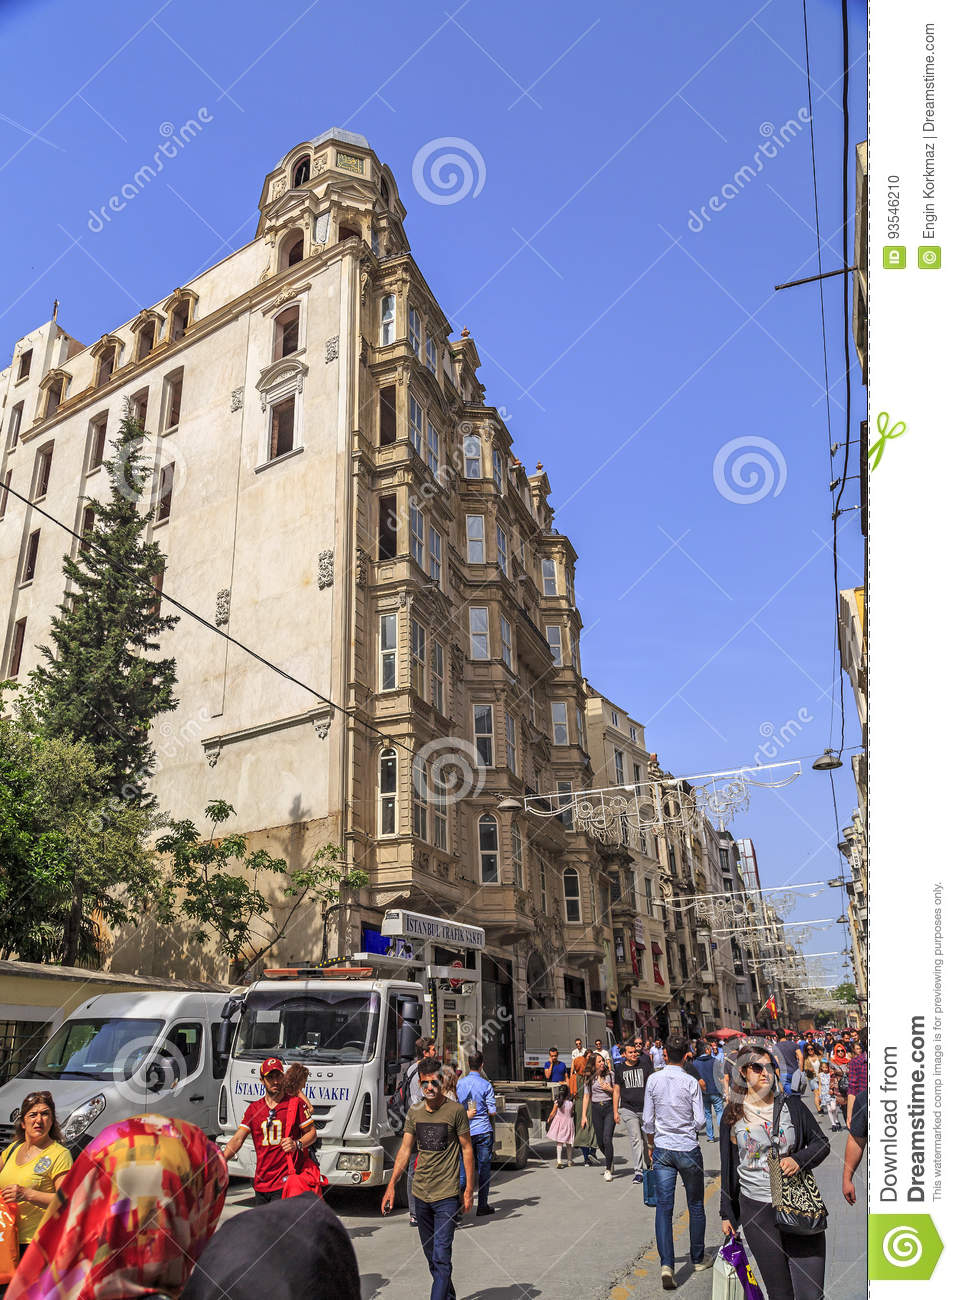 Generic architecture and people walking in Istiklal Caddesi or I